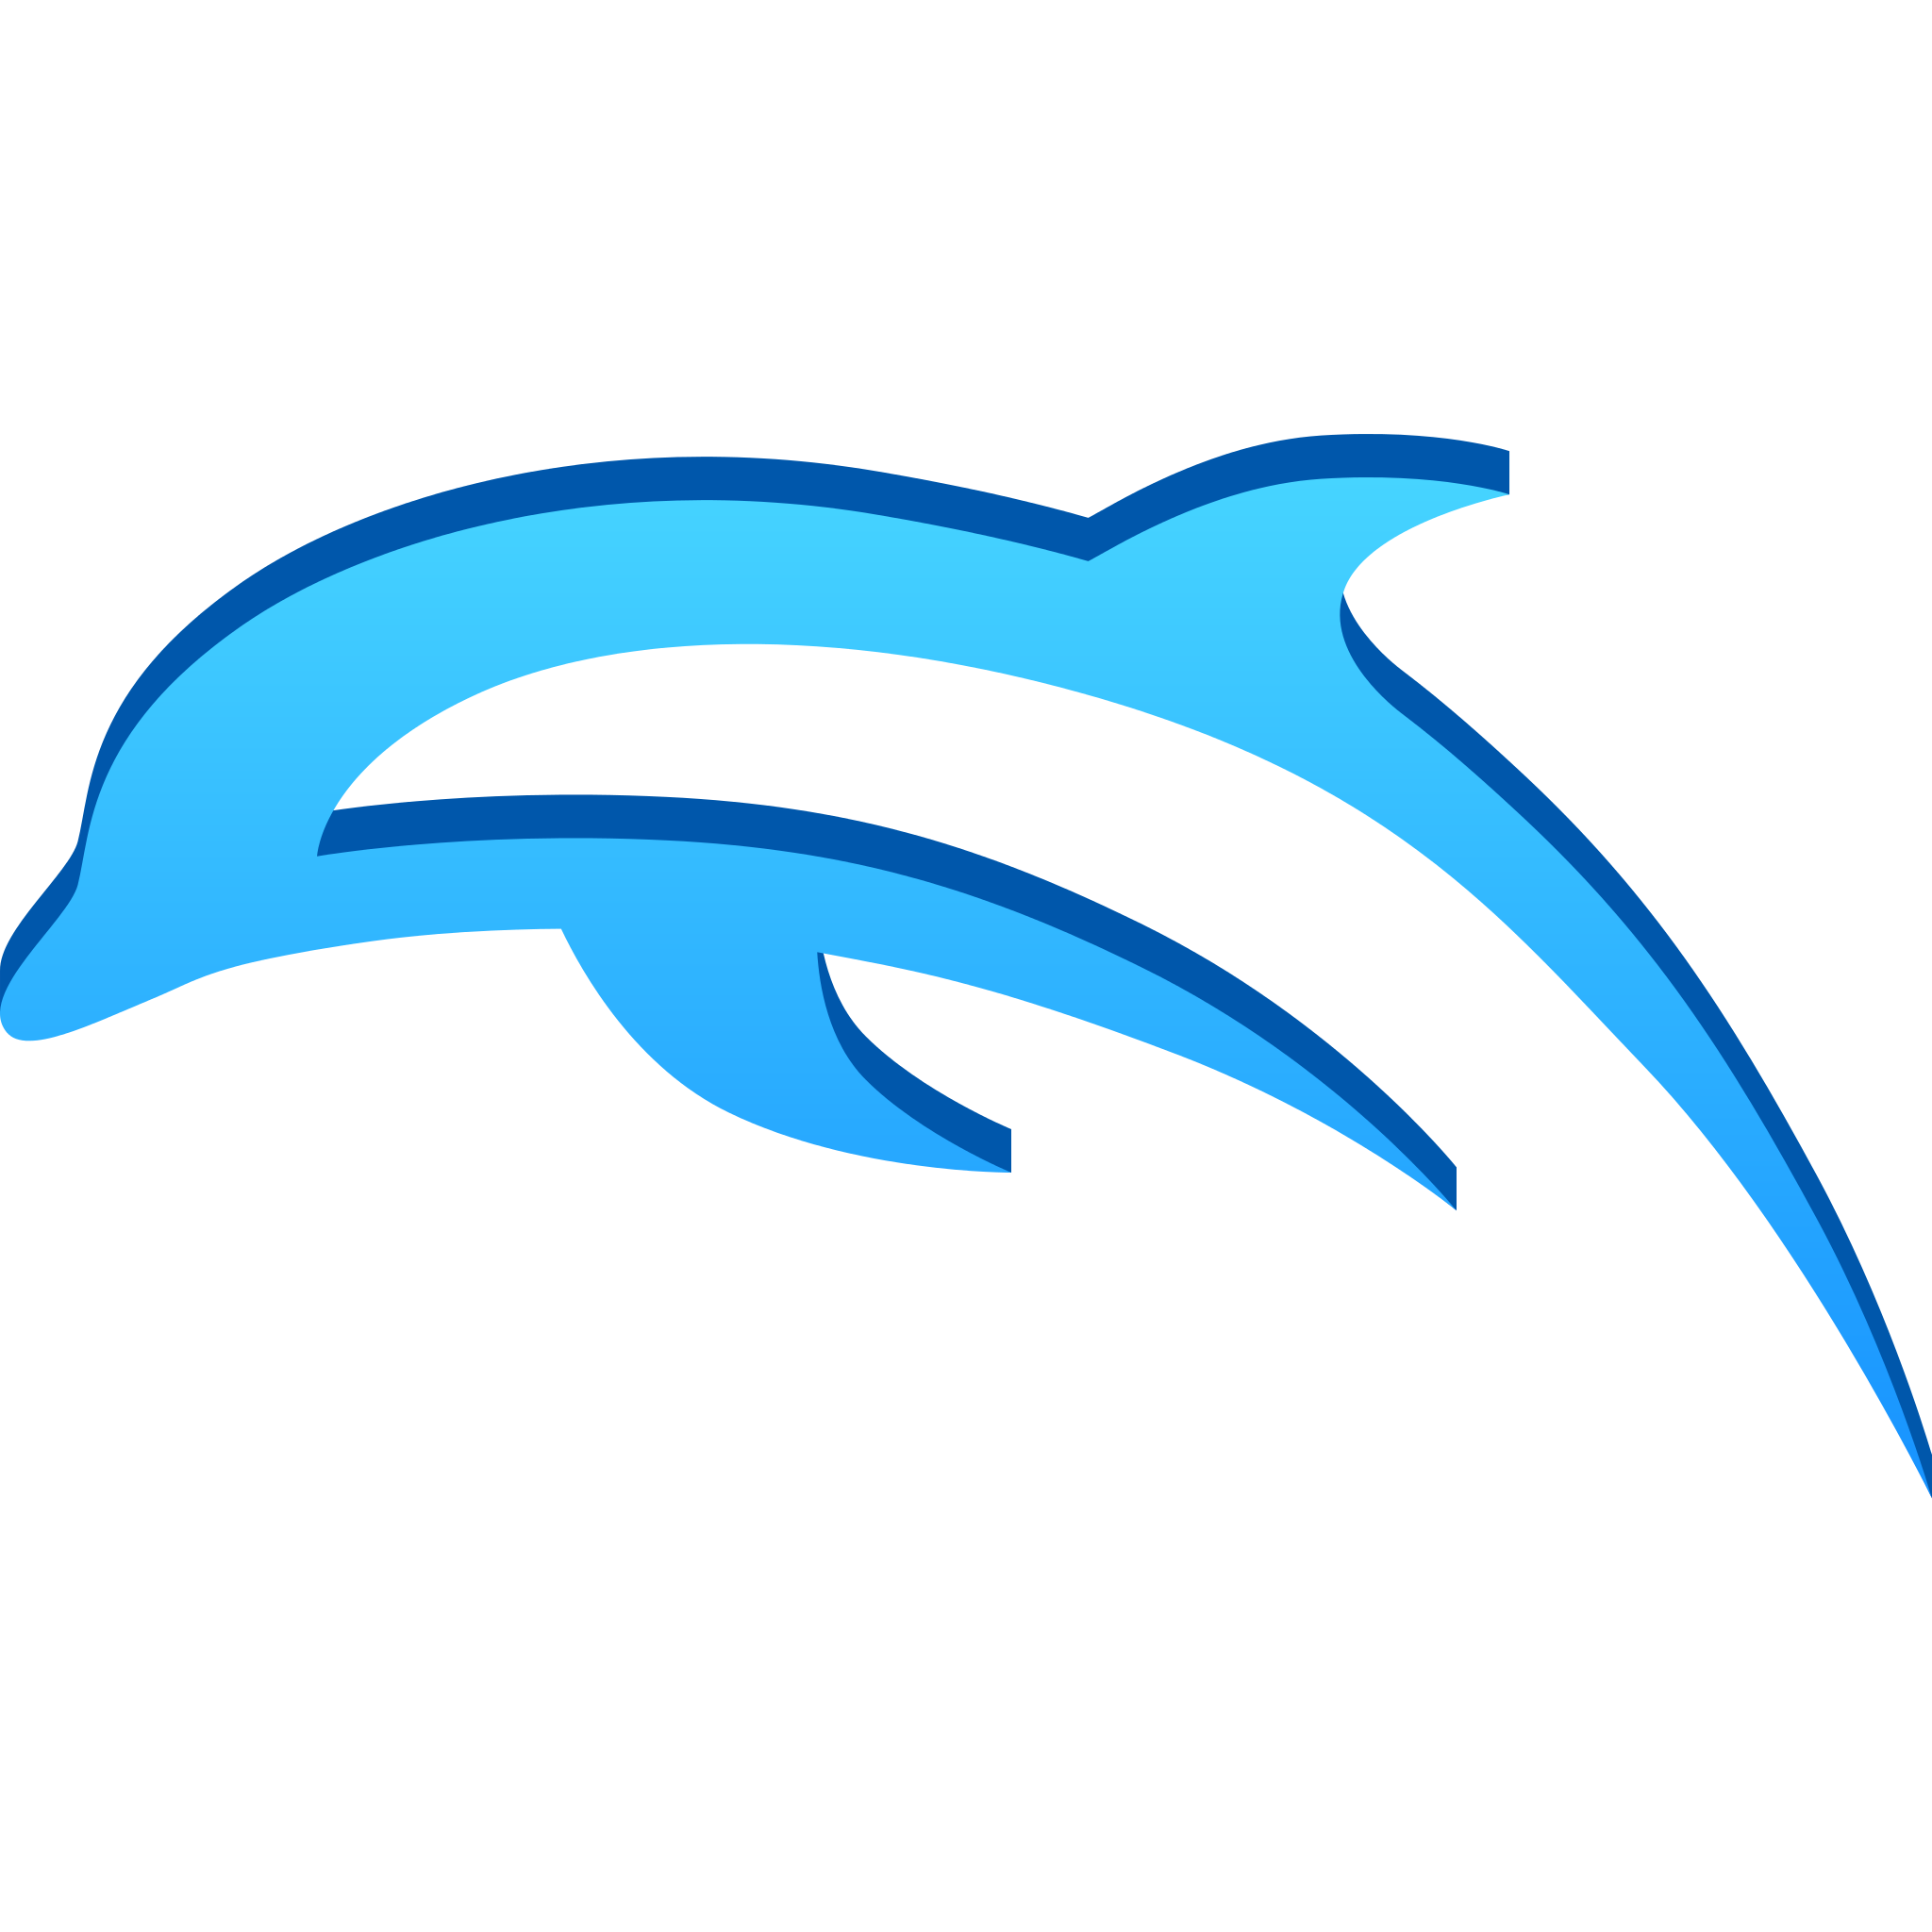 Emulator on twitter this. Dolphin clipart logo